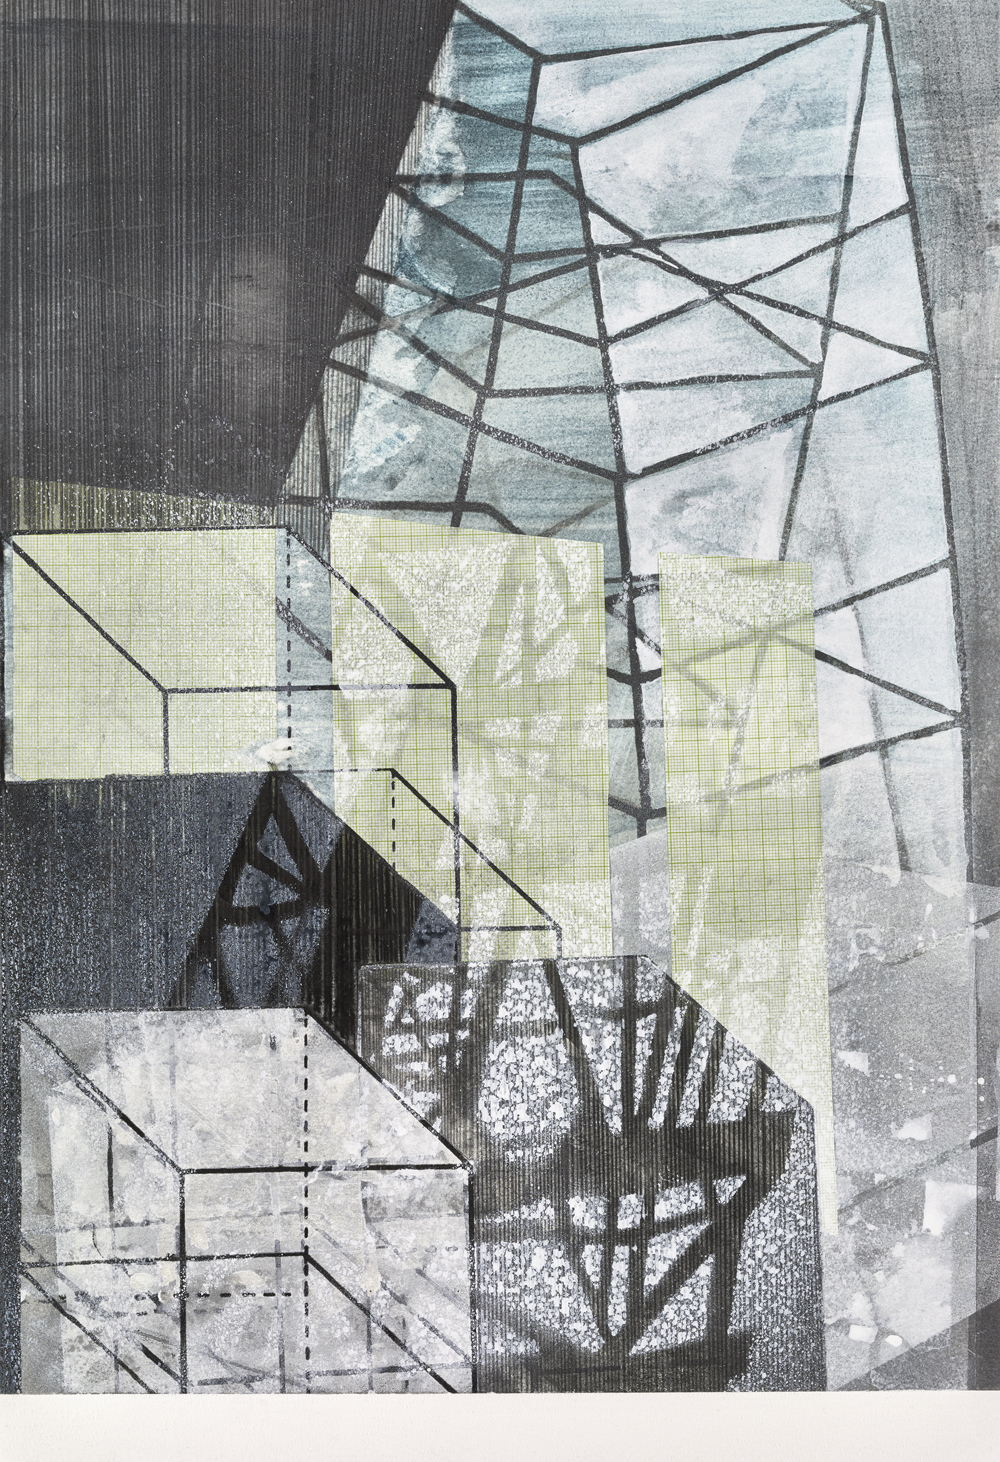 Amanda Knowles, Untitled (Built Environment) I, 2017, screen print, graphite + acrylic on paper, 19 x 13 inches, $800.